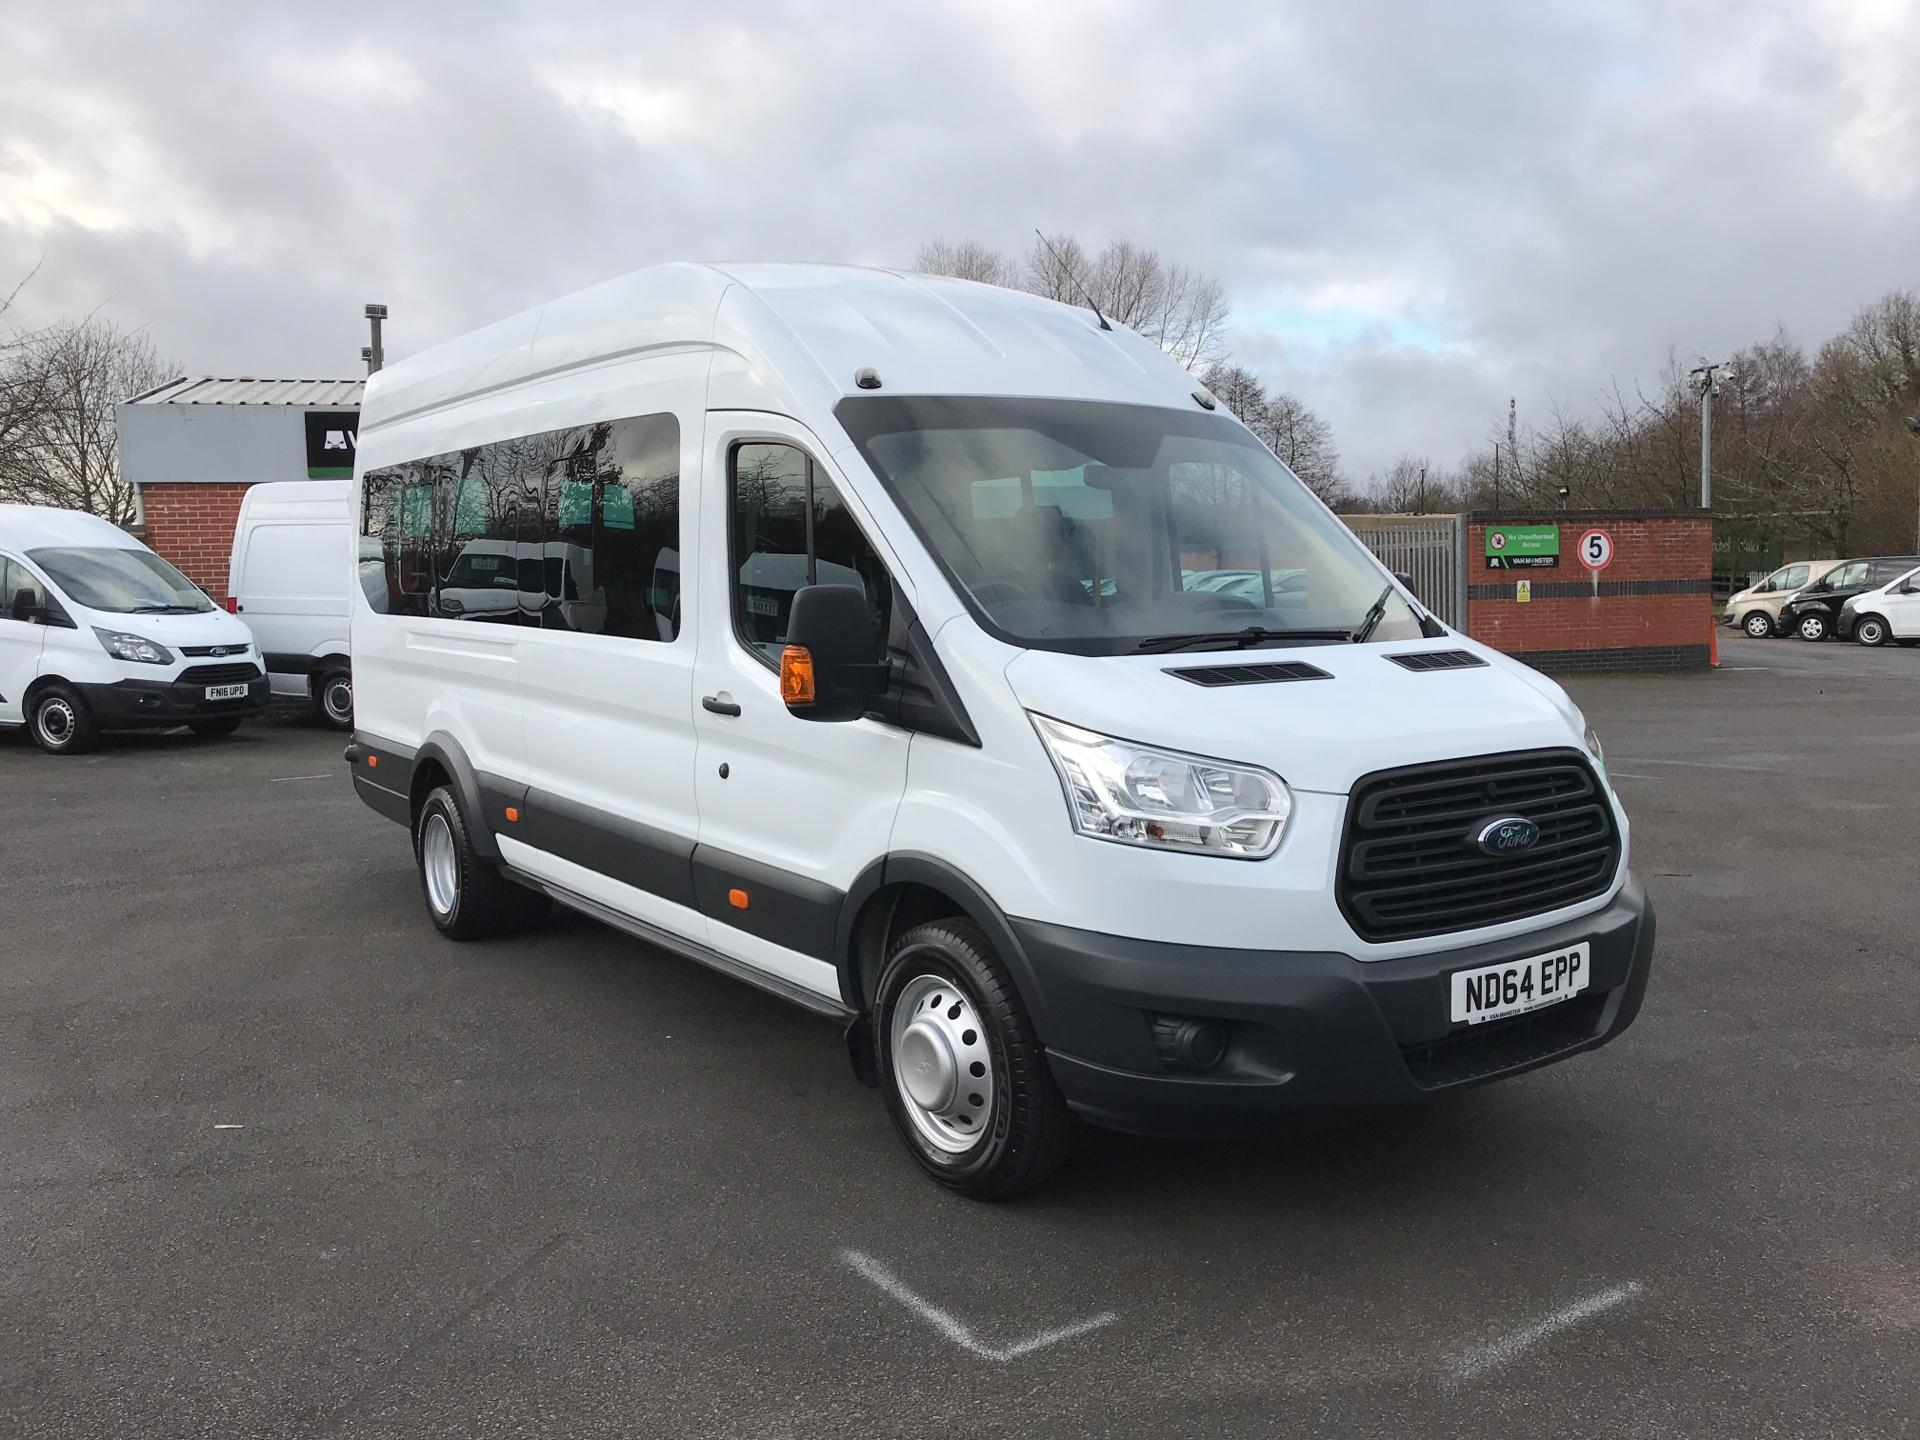 2014 Ford Transit T460 L4 H3 HIGH ROOF MINIBUS 125PS EURO 6 (ND64EPP)